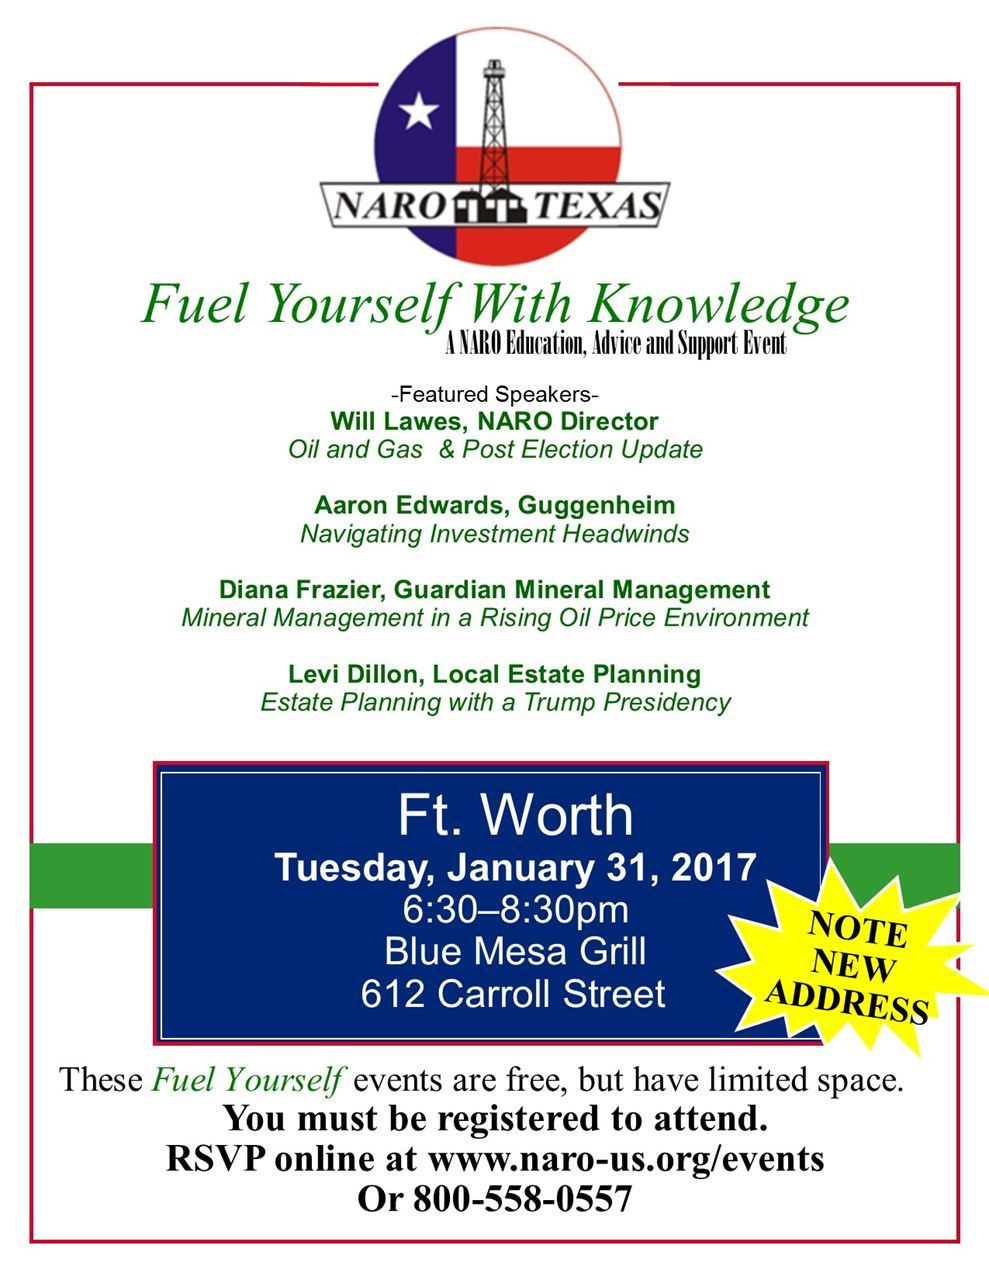 naro texas fuel yourself knowledge